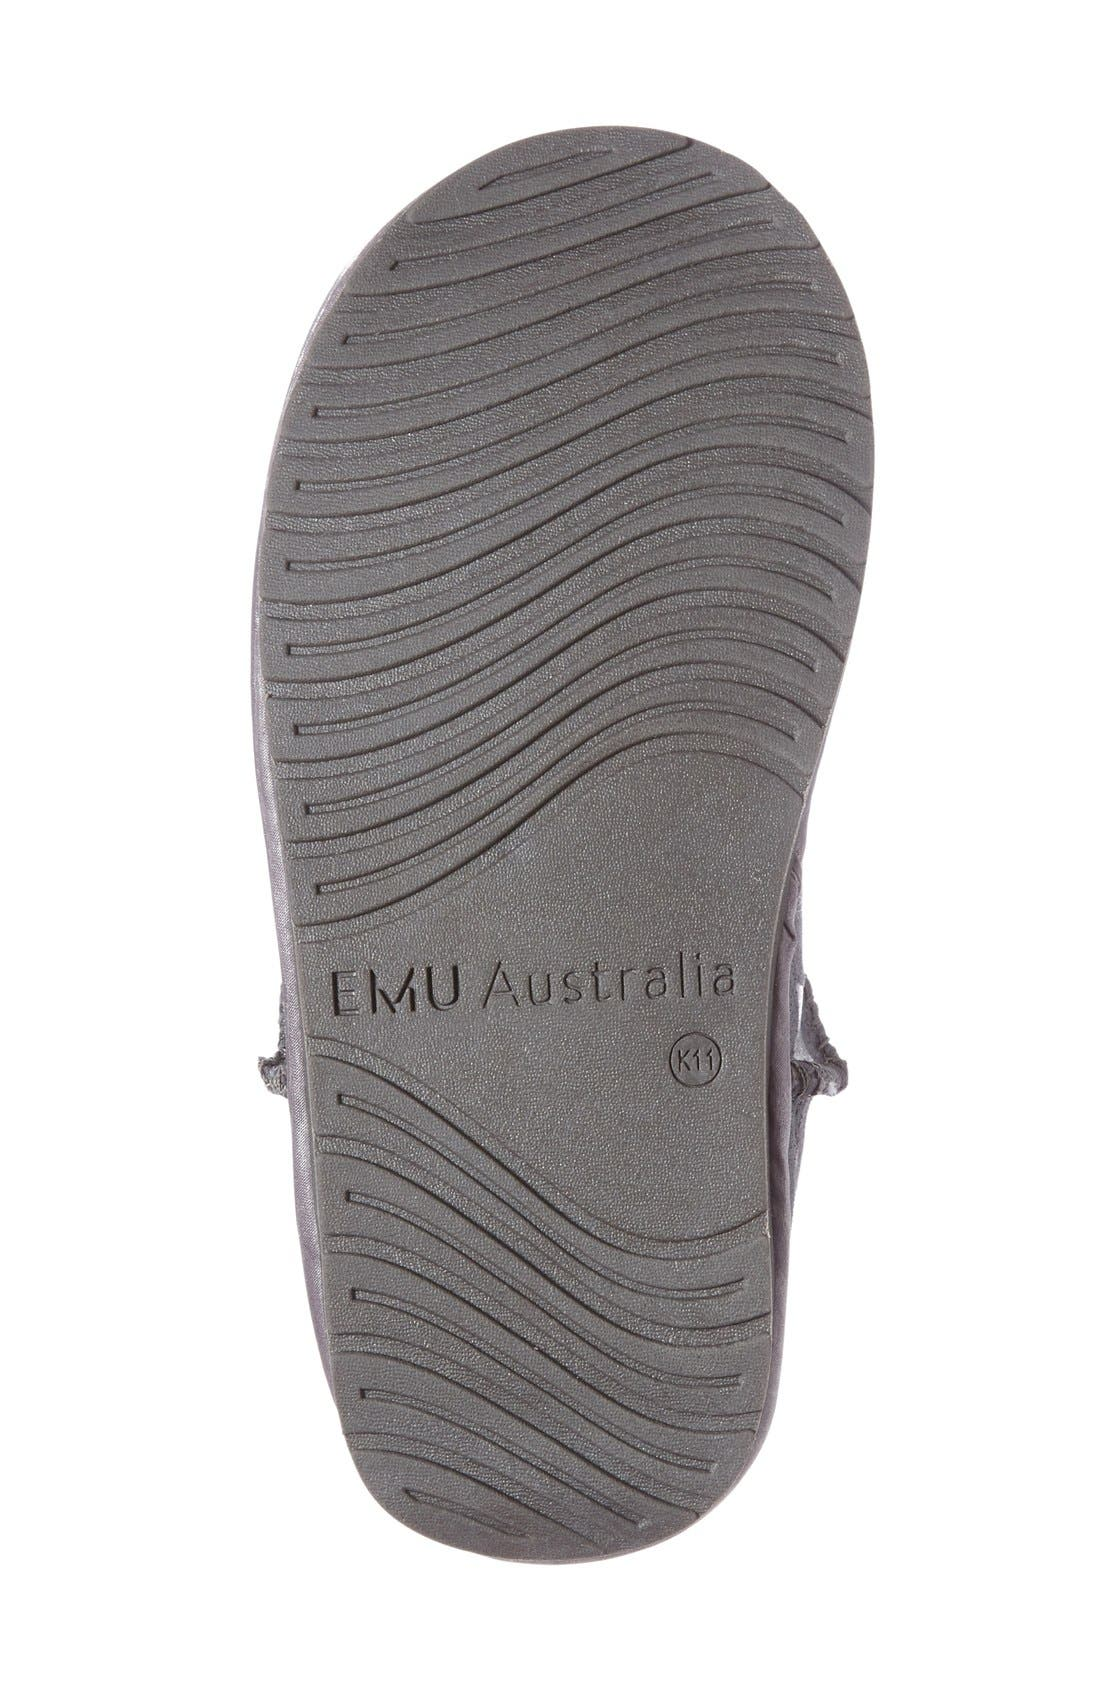 EMUAustralia Starry Night Boot,                             Alternate thumbnail 7, color,                             CHARCOAL